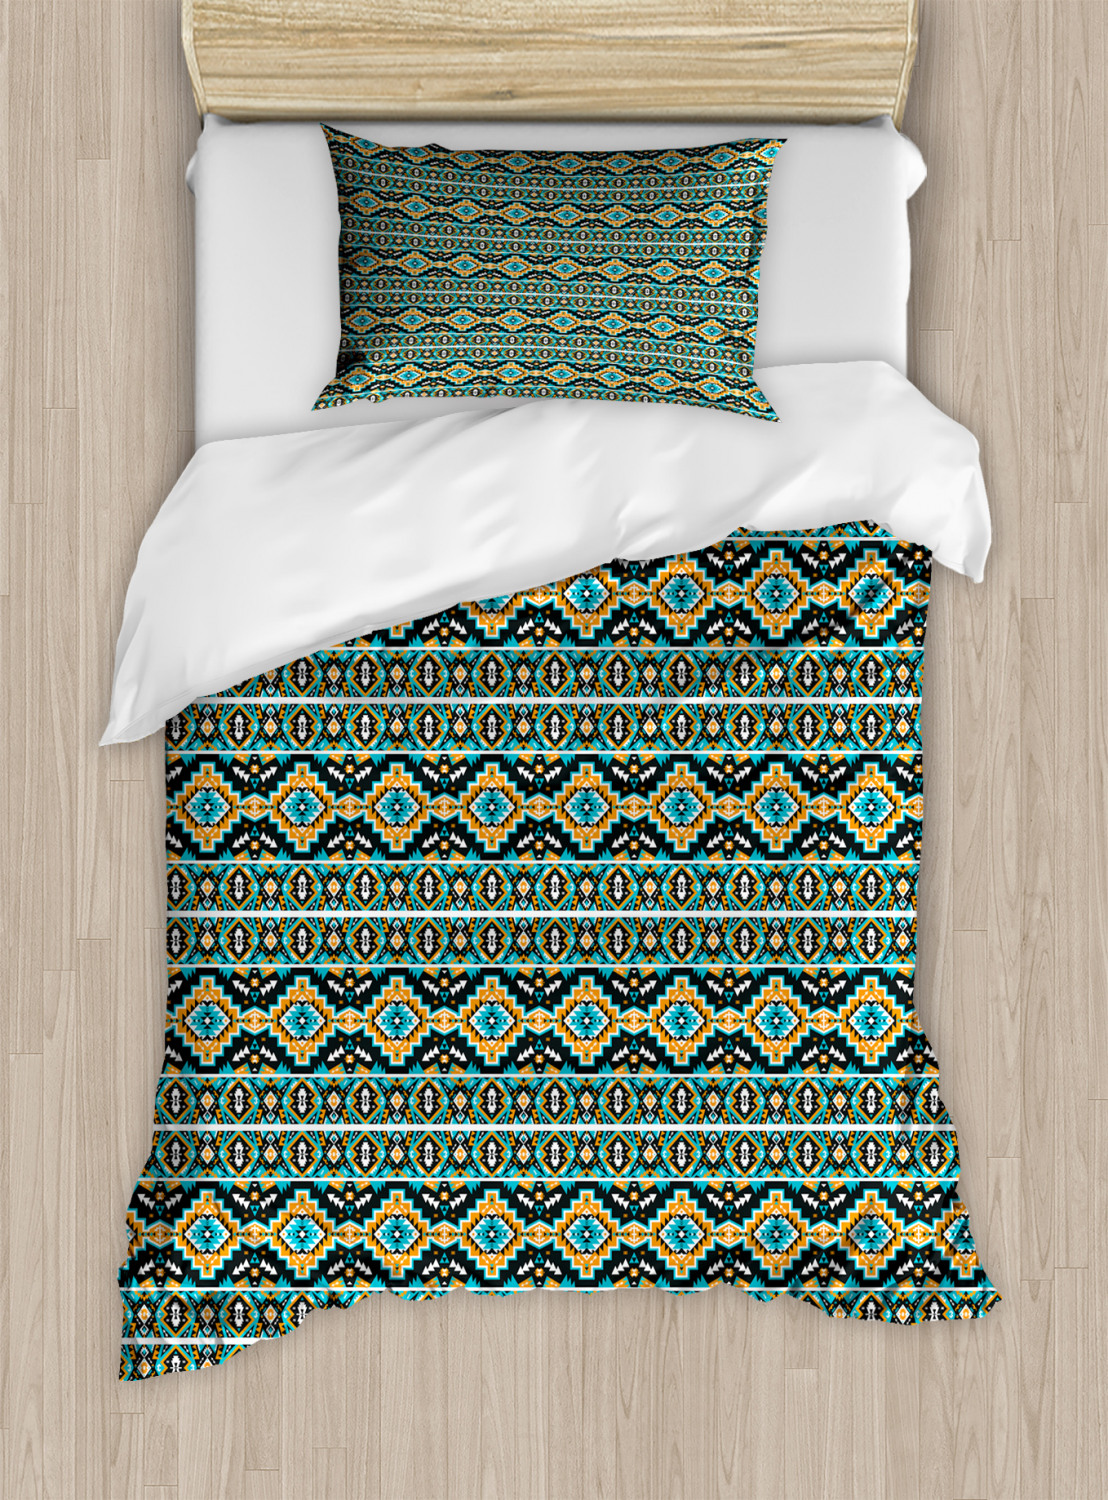 Timeless-Oriental-Duvet-Cover-Set-Twin-Queen-King-Sizes-with-Pillow-Shams thumbnail 25